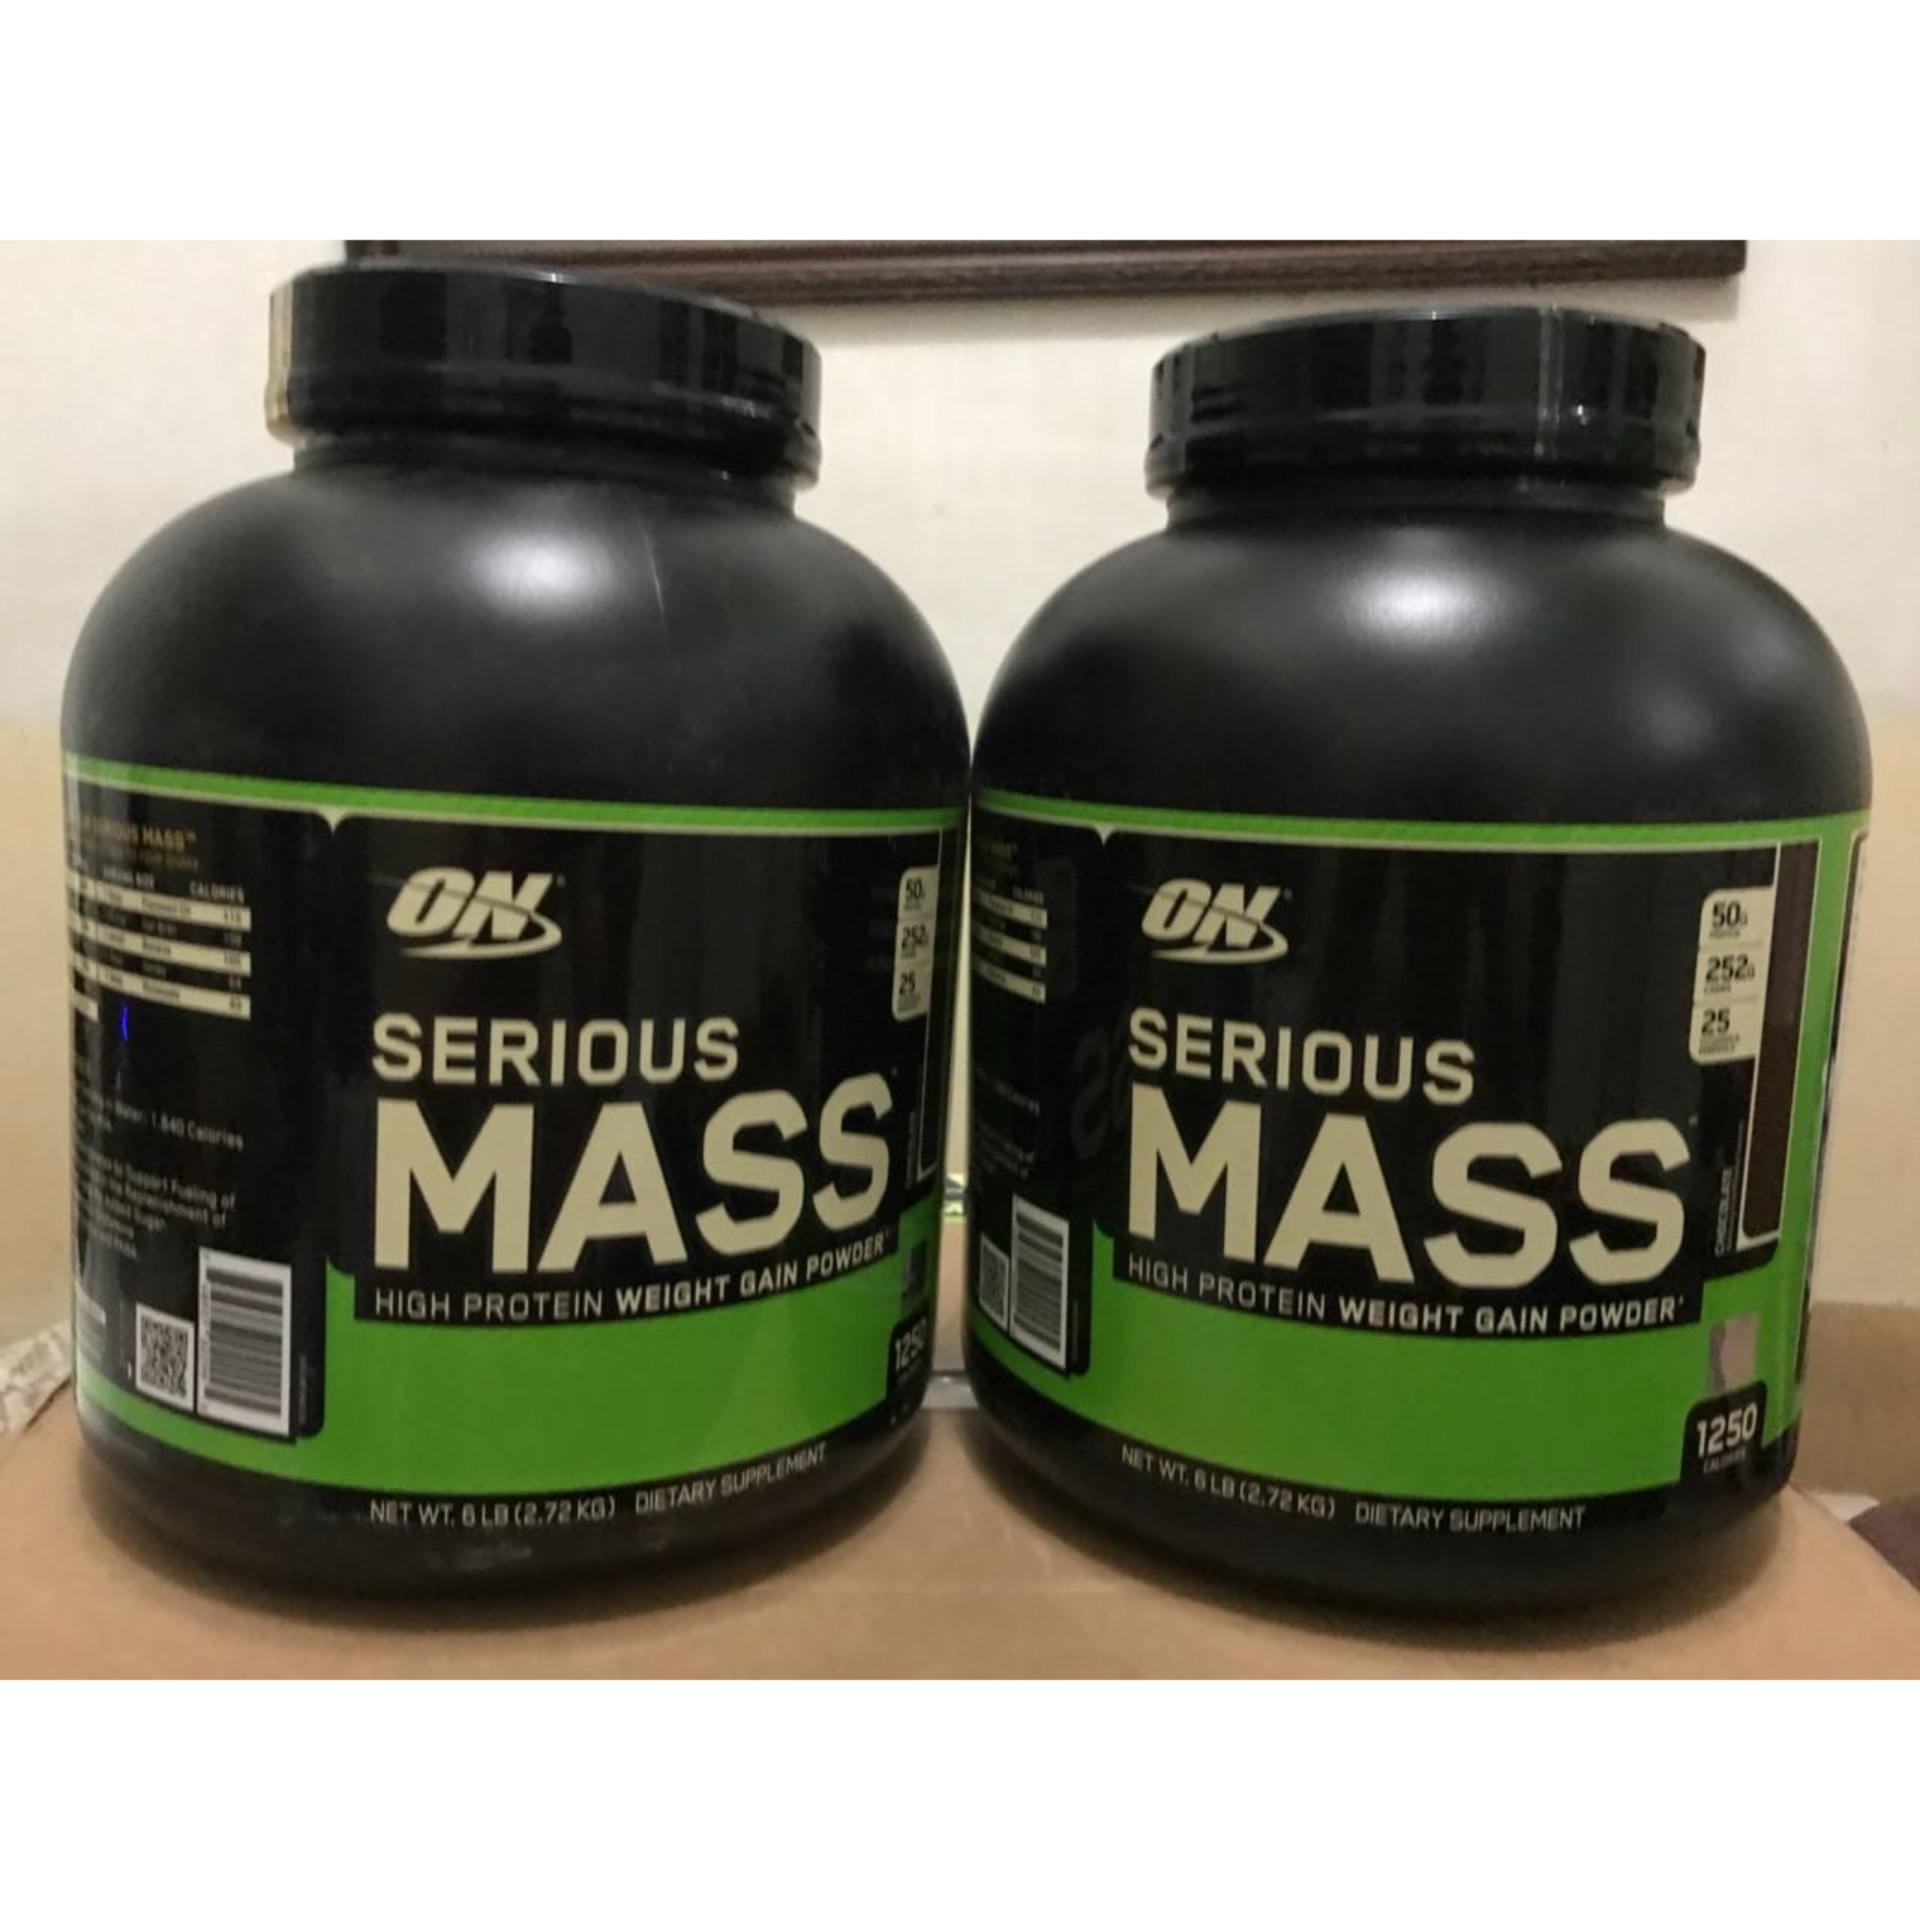 On Serious Mass 6 Lb Serious Mass Gainer By Susu Fitnessku.